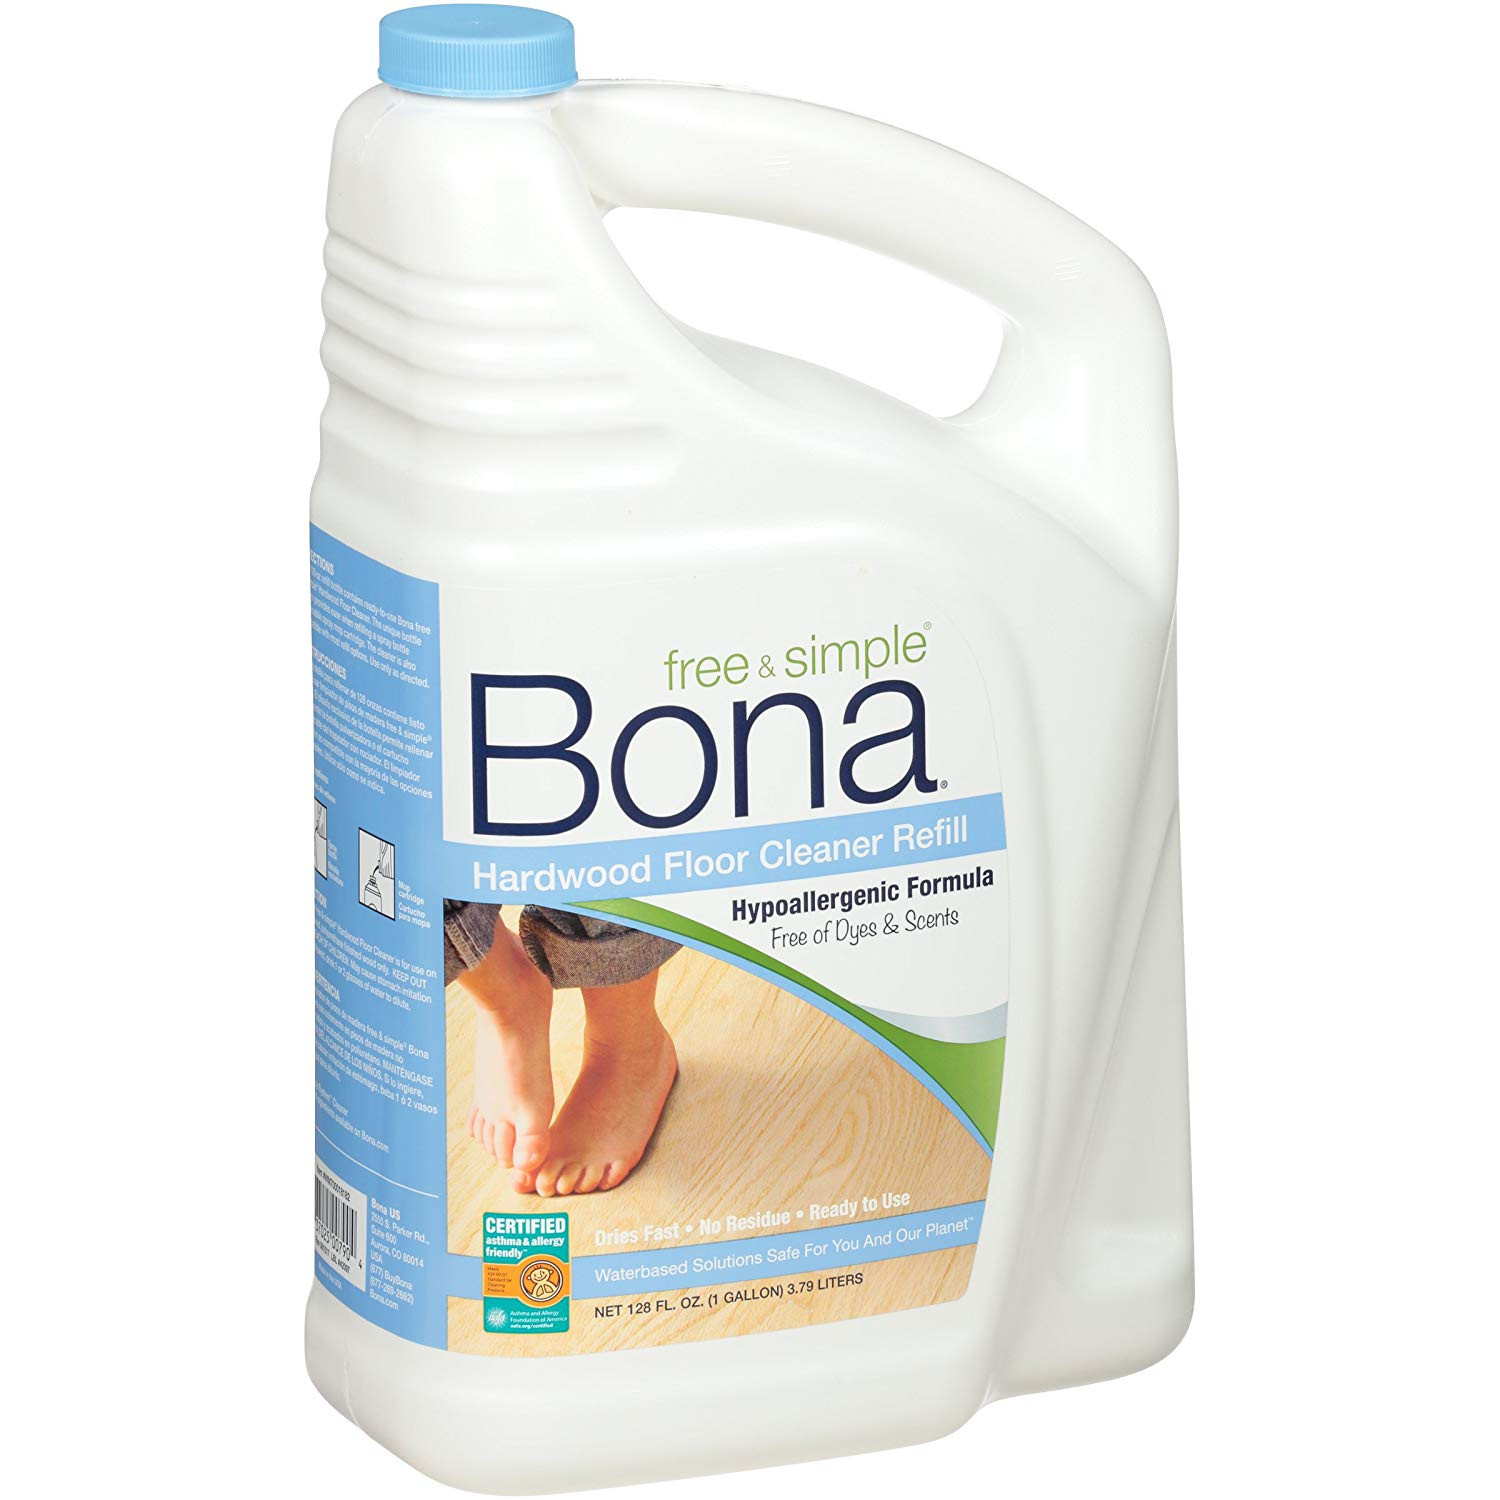 Hardwood Floor Refinishing Supplies Near Me Of Amazon Com Bona Wm700018182 Free Simple Hardwood Floor Cleaner Pertaining to Amazon Com Bona Wm700018182 Free Simple Hardwood Floor Cleaner Refill 128 Oz Health Personal Care